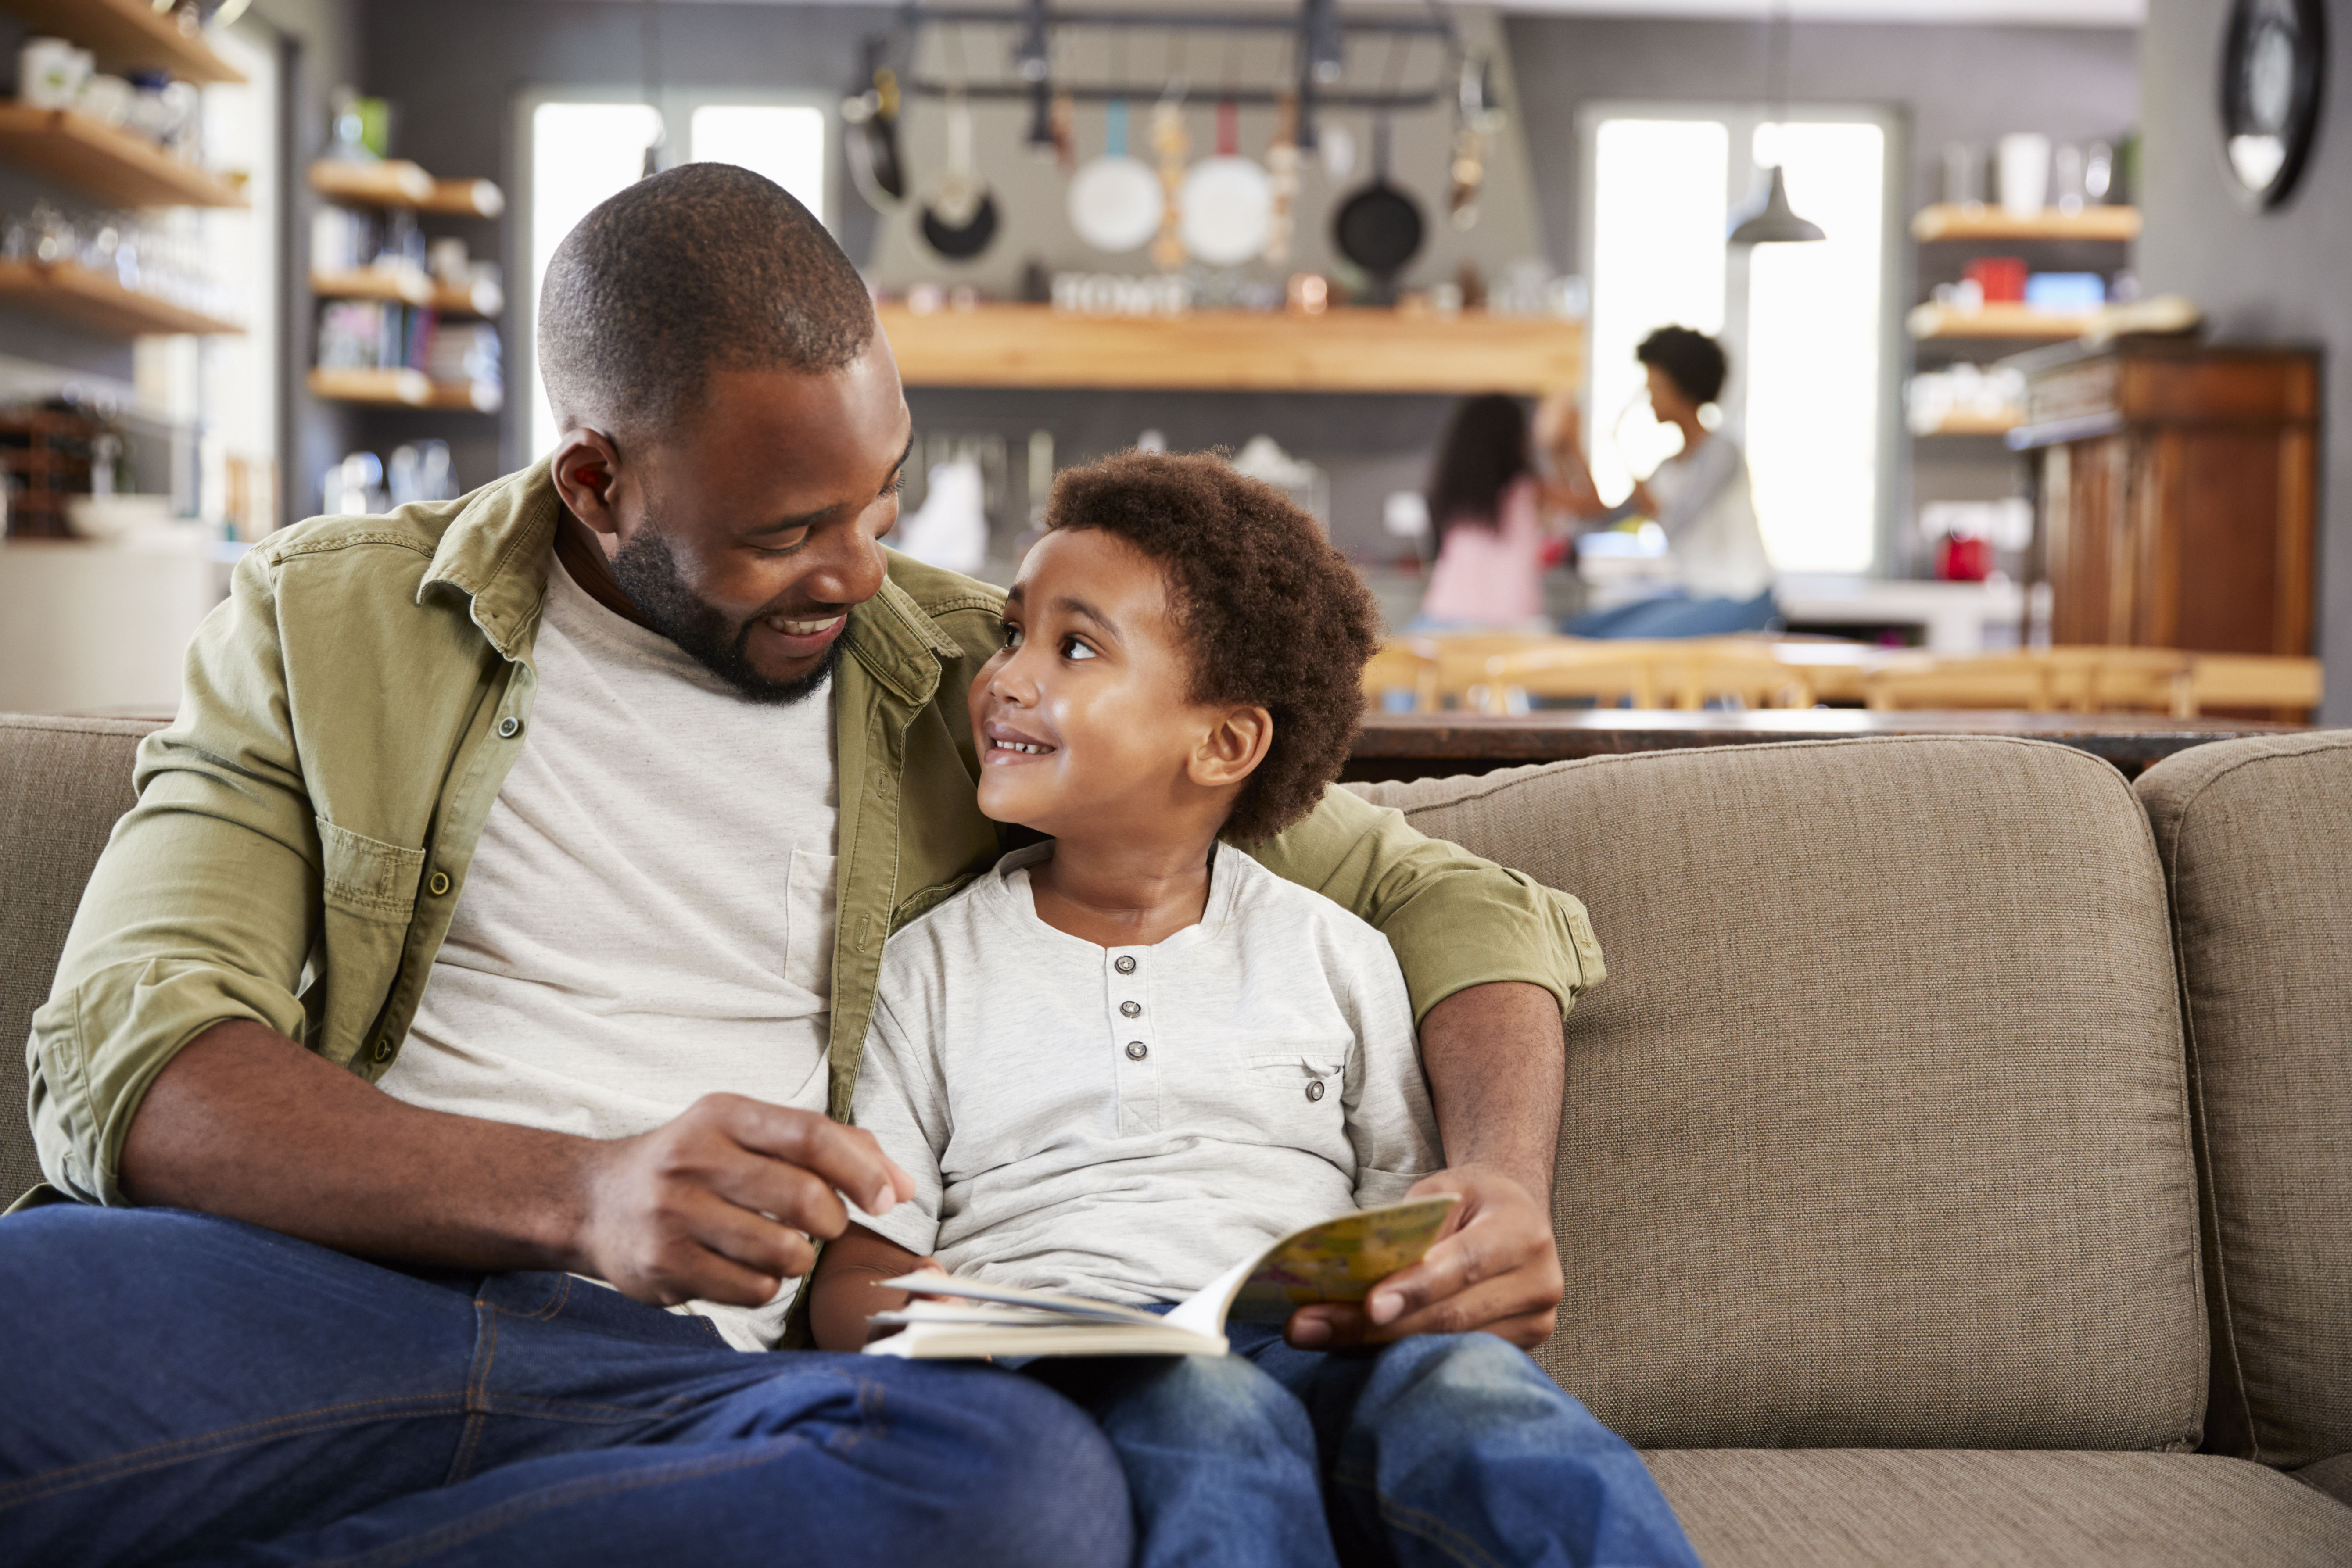 For Father's Day, consider helping a child without one